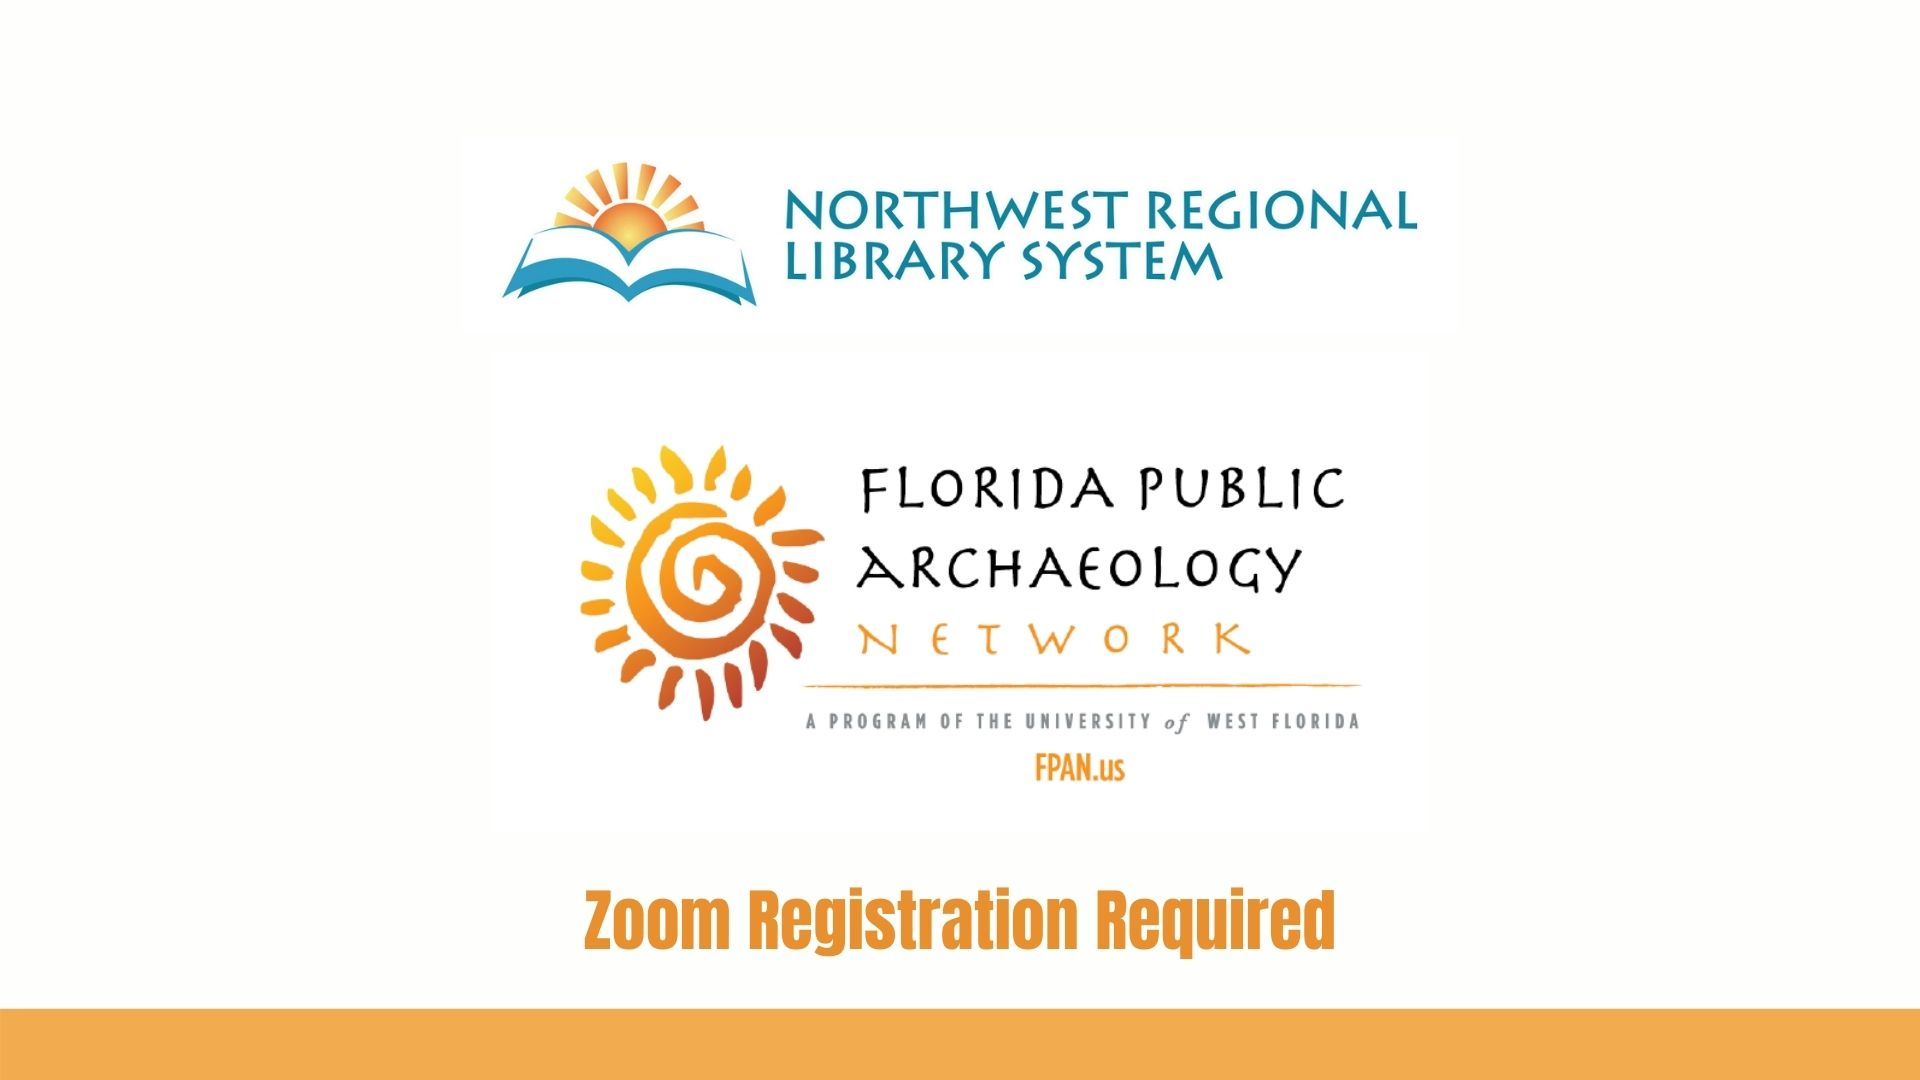 florida public archaeology network